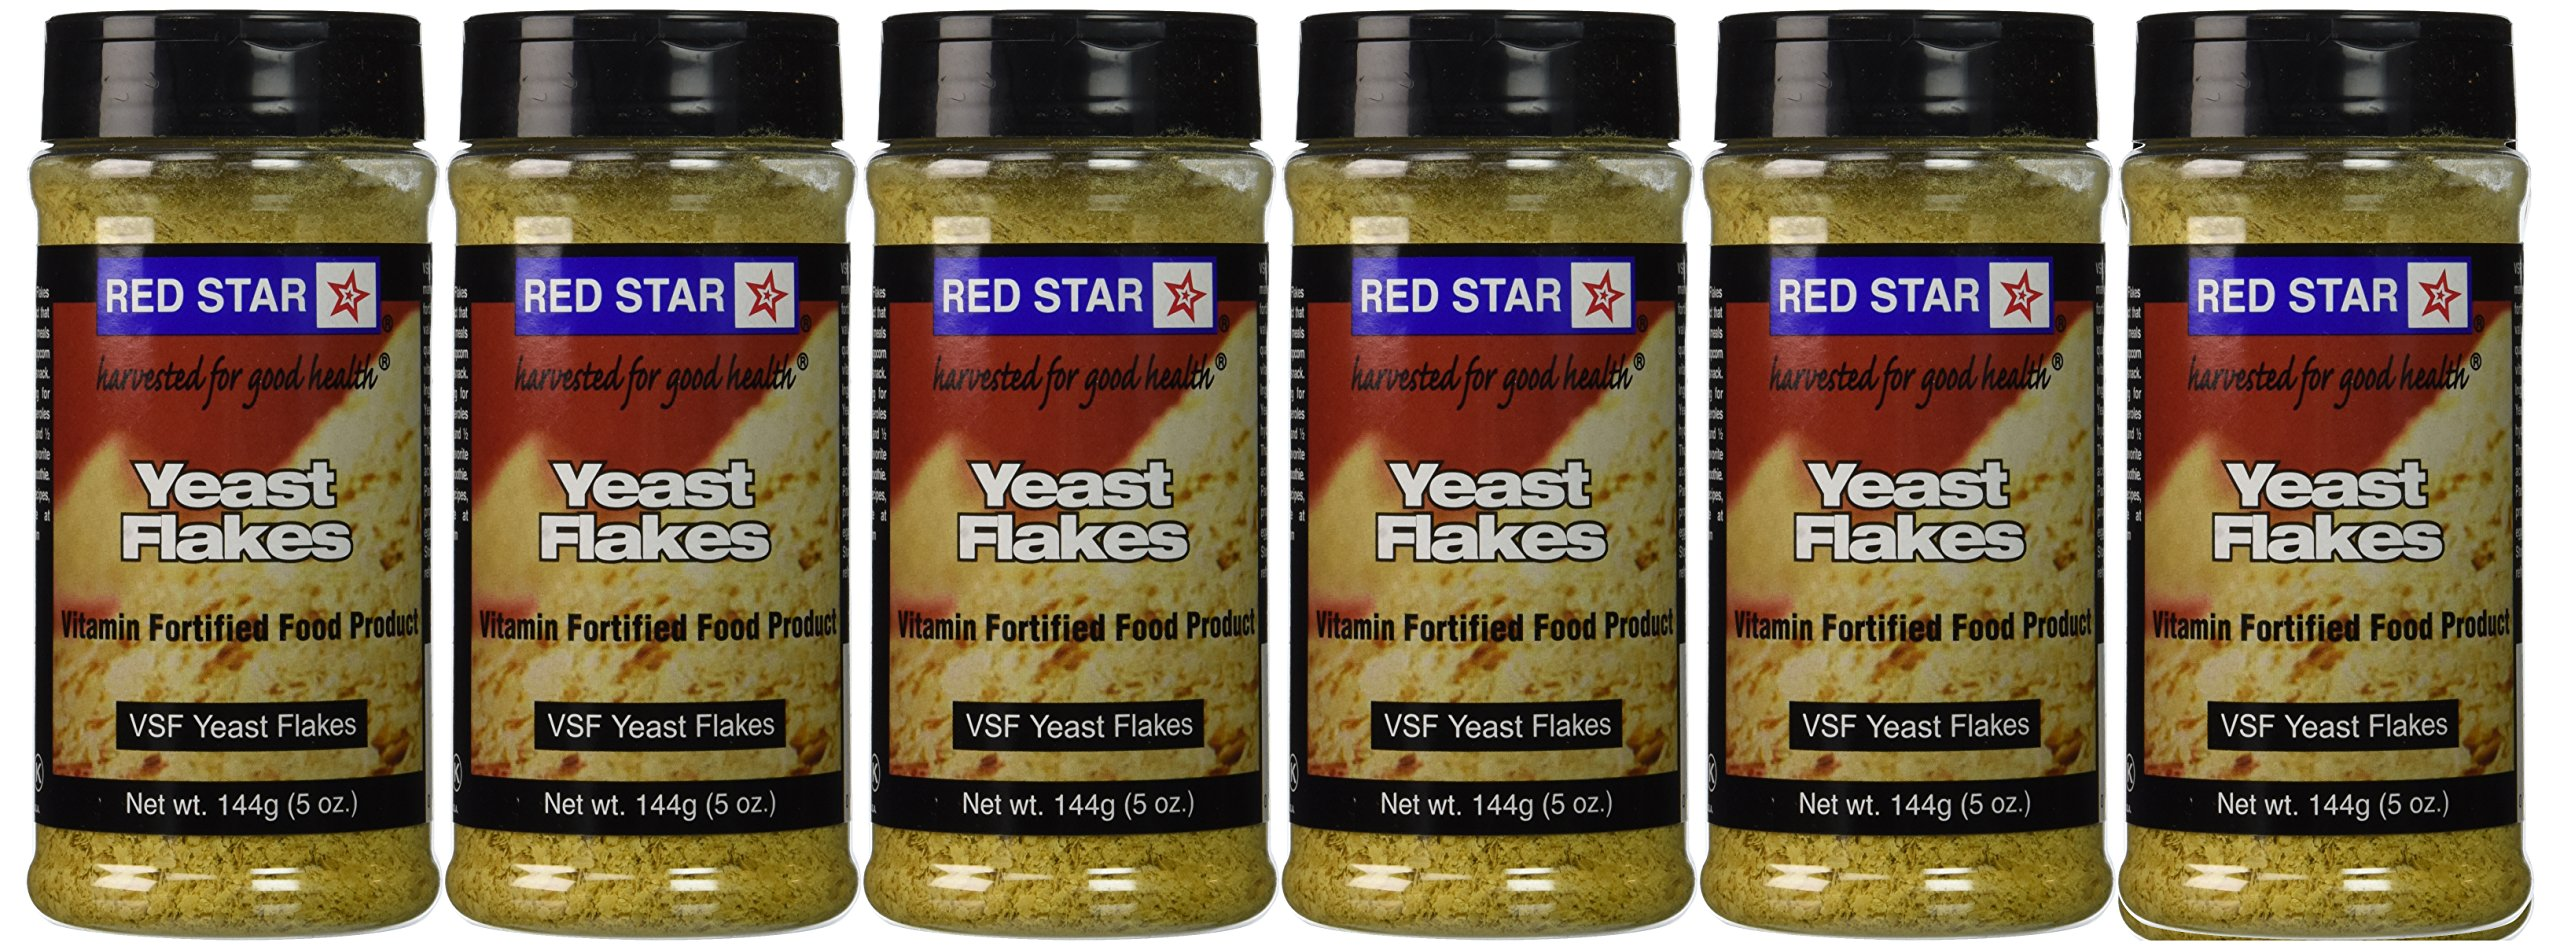 Red Star Nutritional Yeast - VSF Mini Flake -- 5 oz Each (Pack of 6) by Red Star Yeast